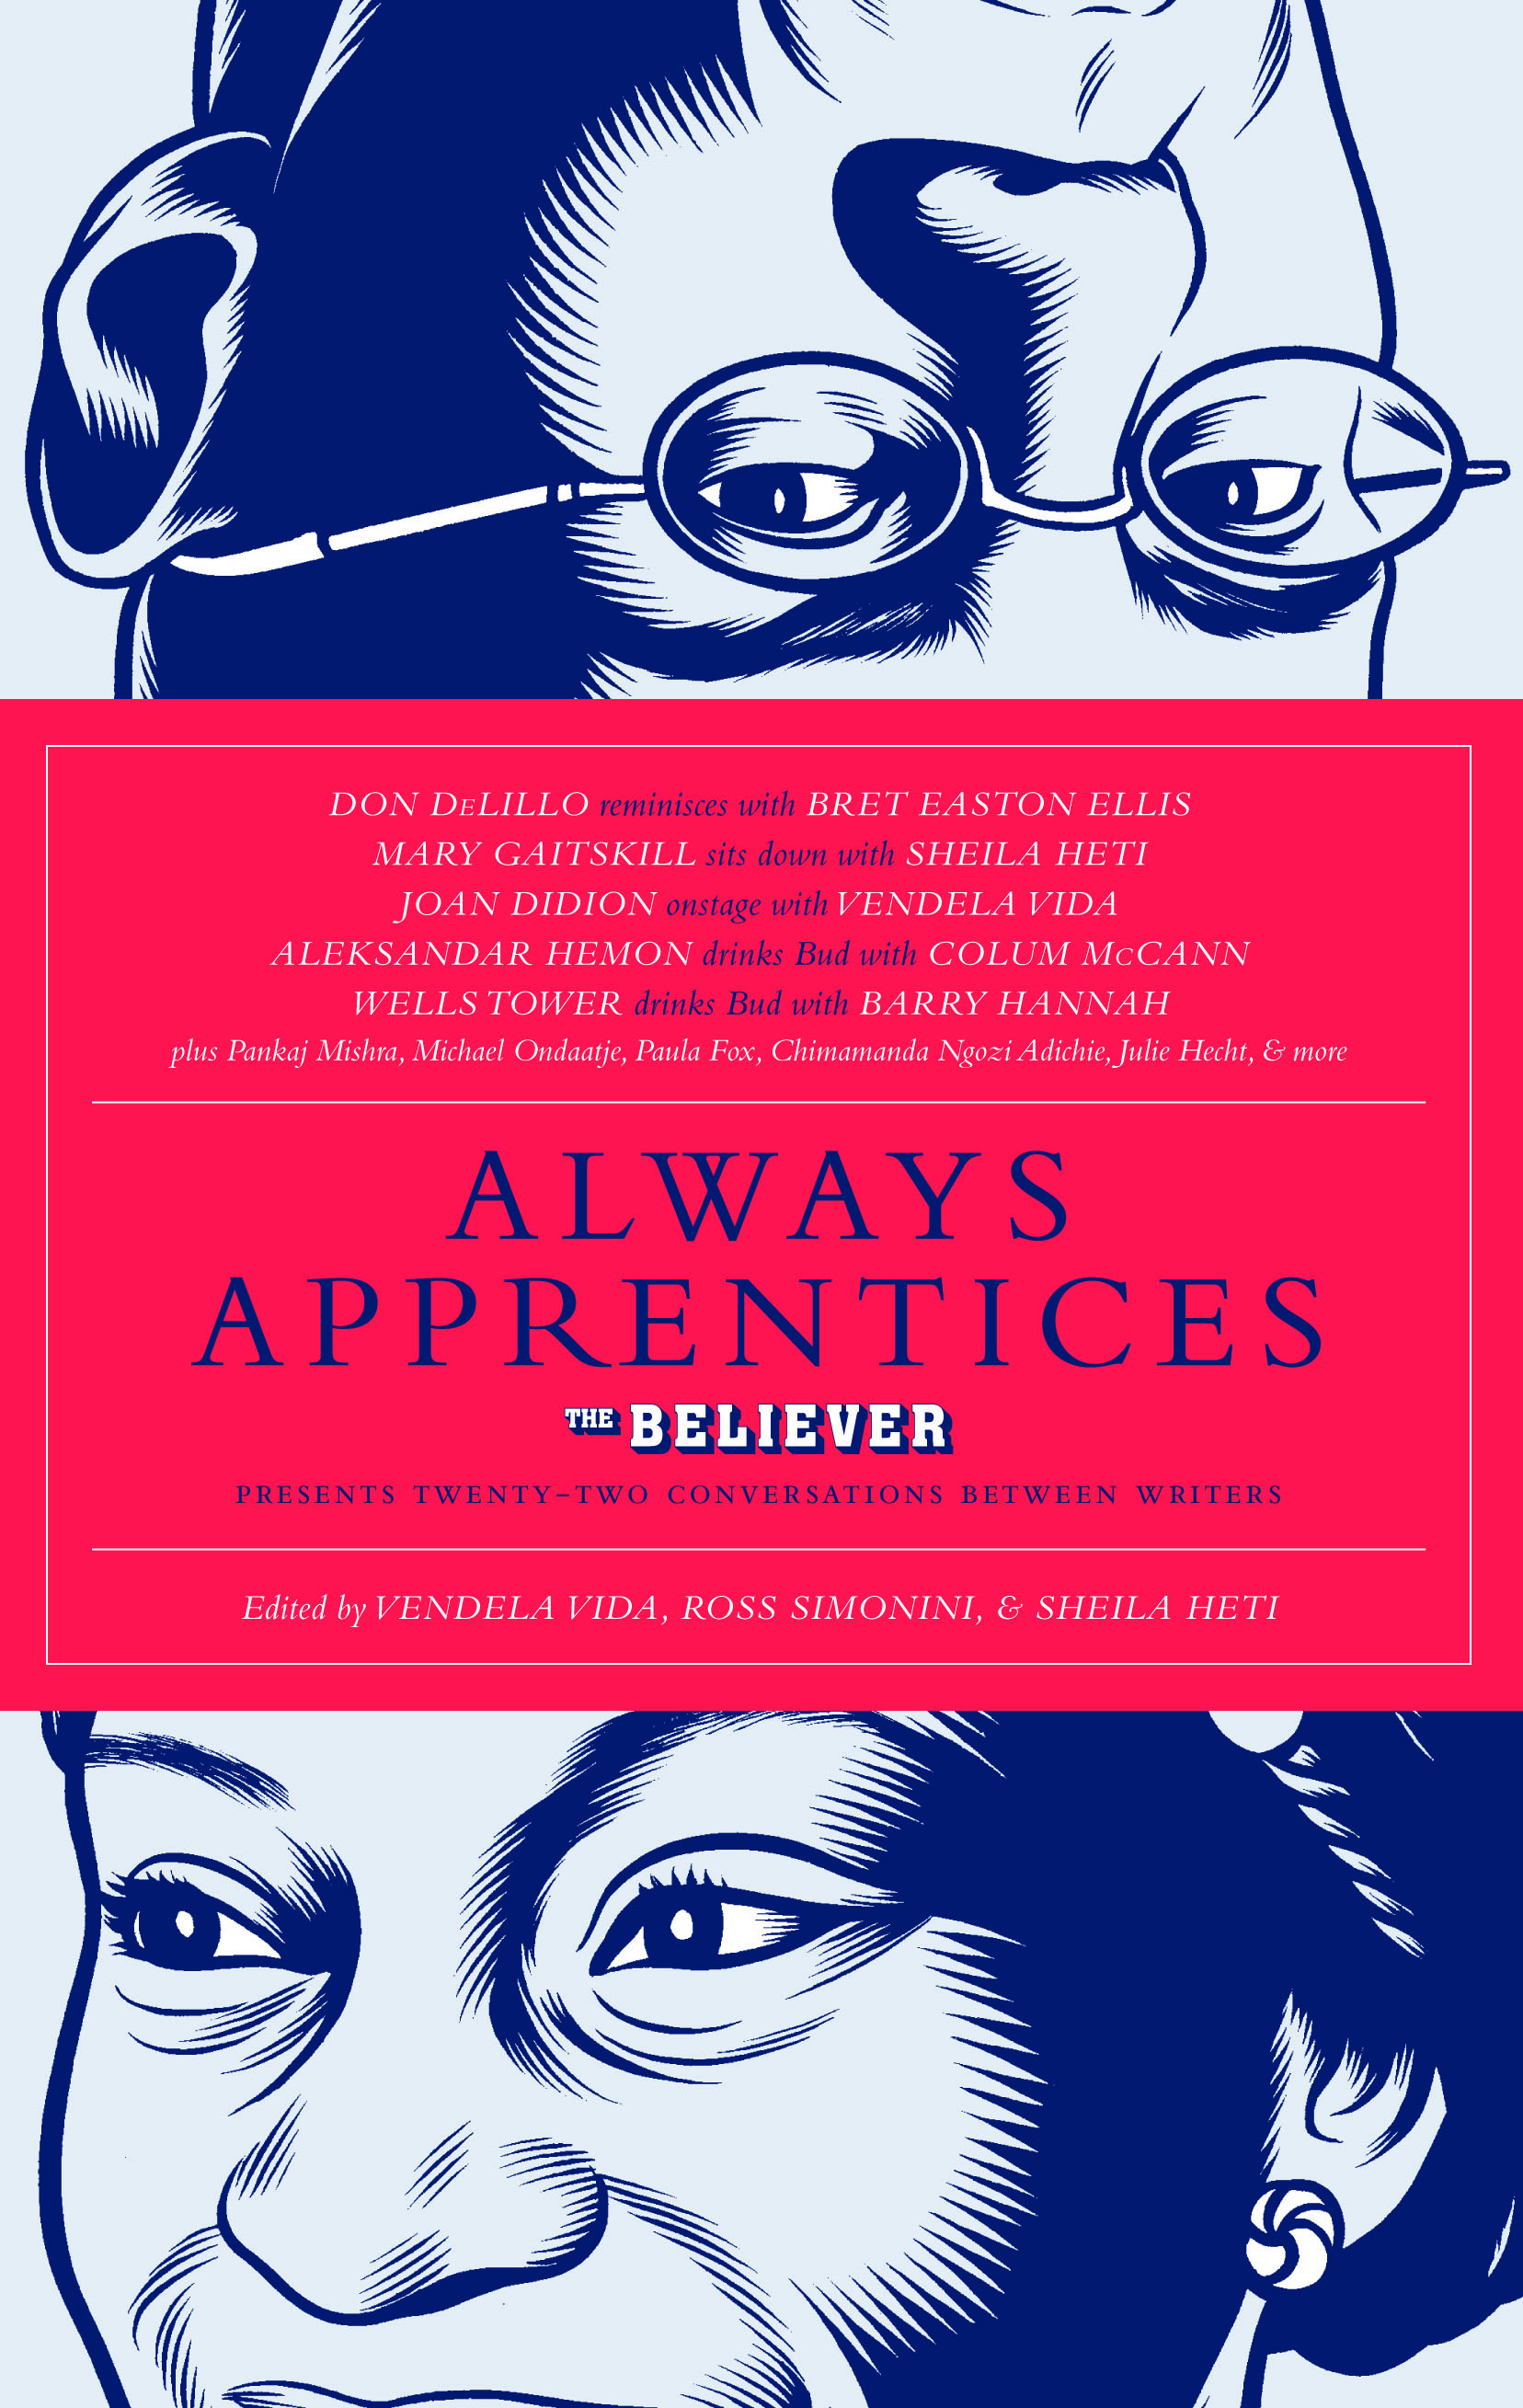 2013-04-18-alwaysapprentices_cover.jpg